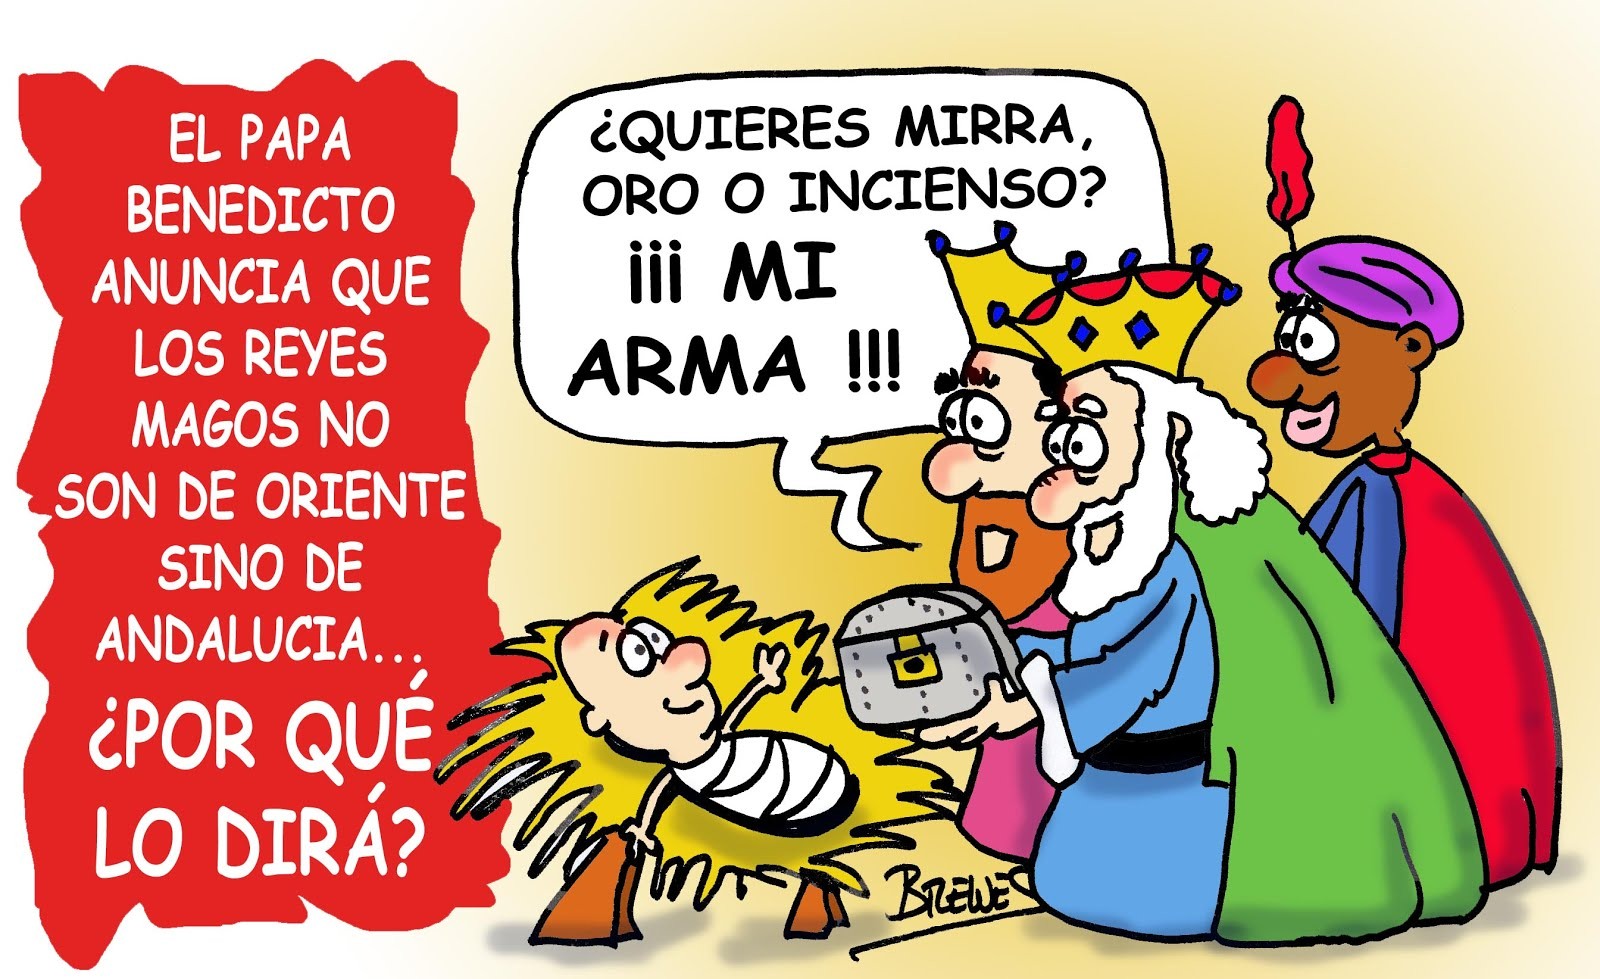 Chistes graficos REYES+MAGOS+ANDALUCES